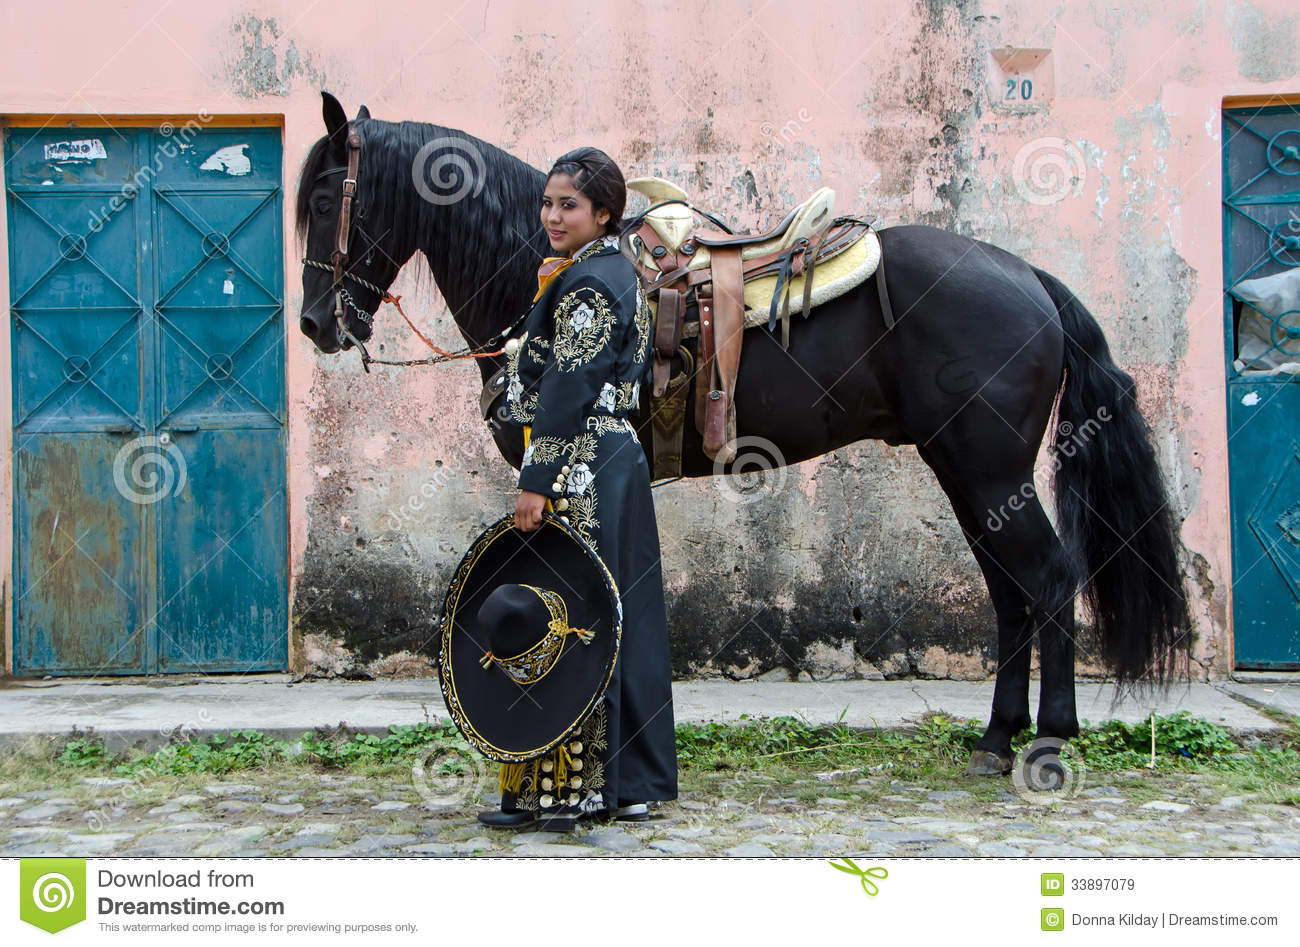 1 864 Mexican Horse Photos Free Royalty Free Stock Photos From Dreamstime